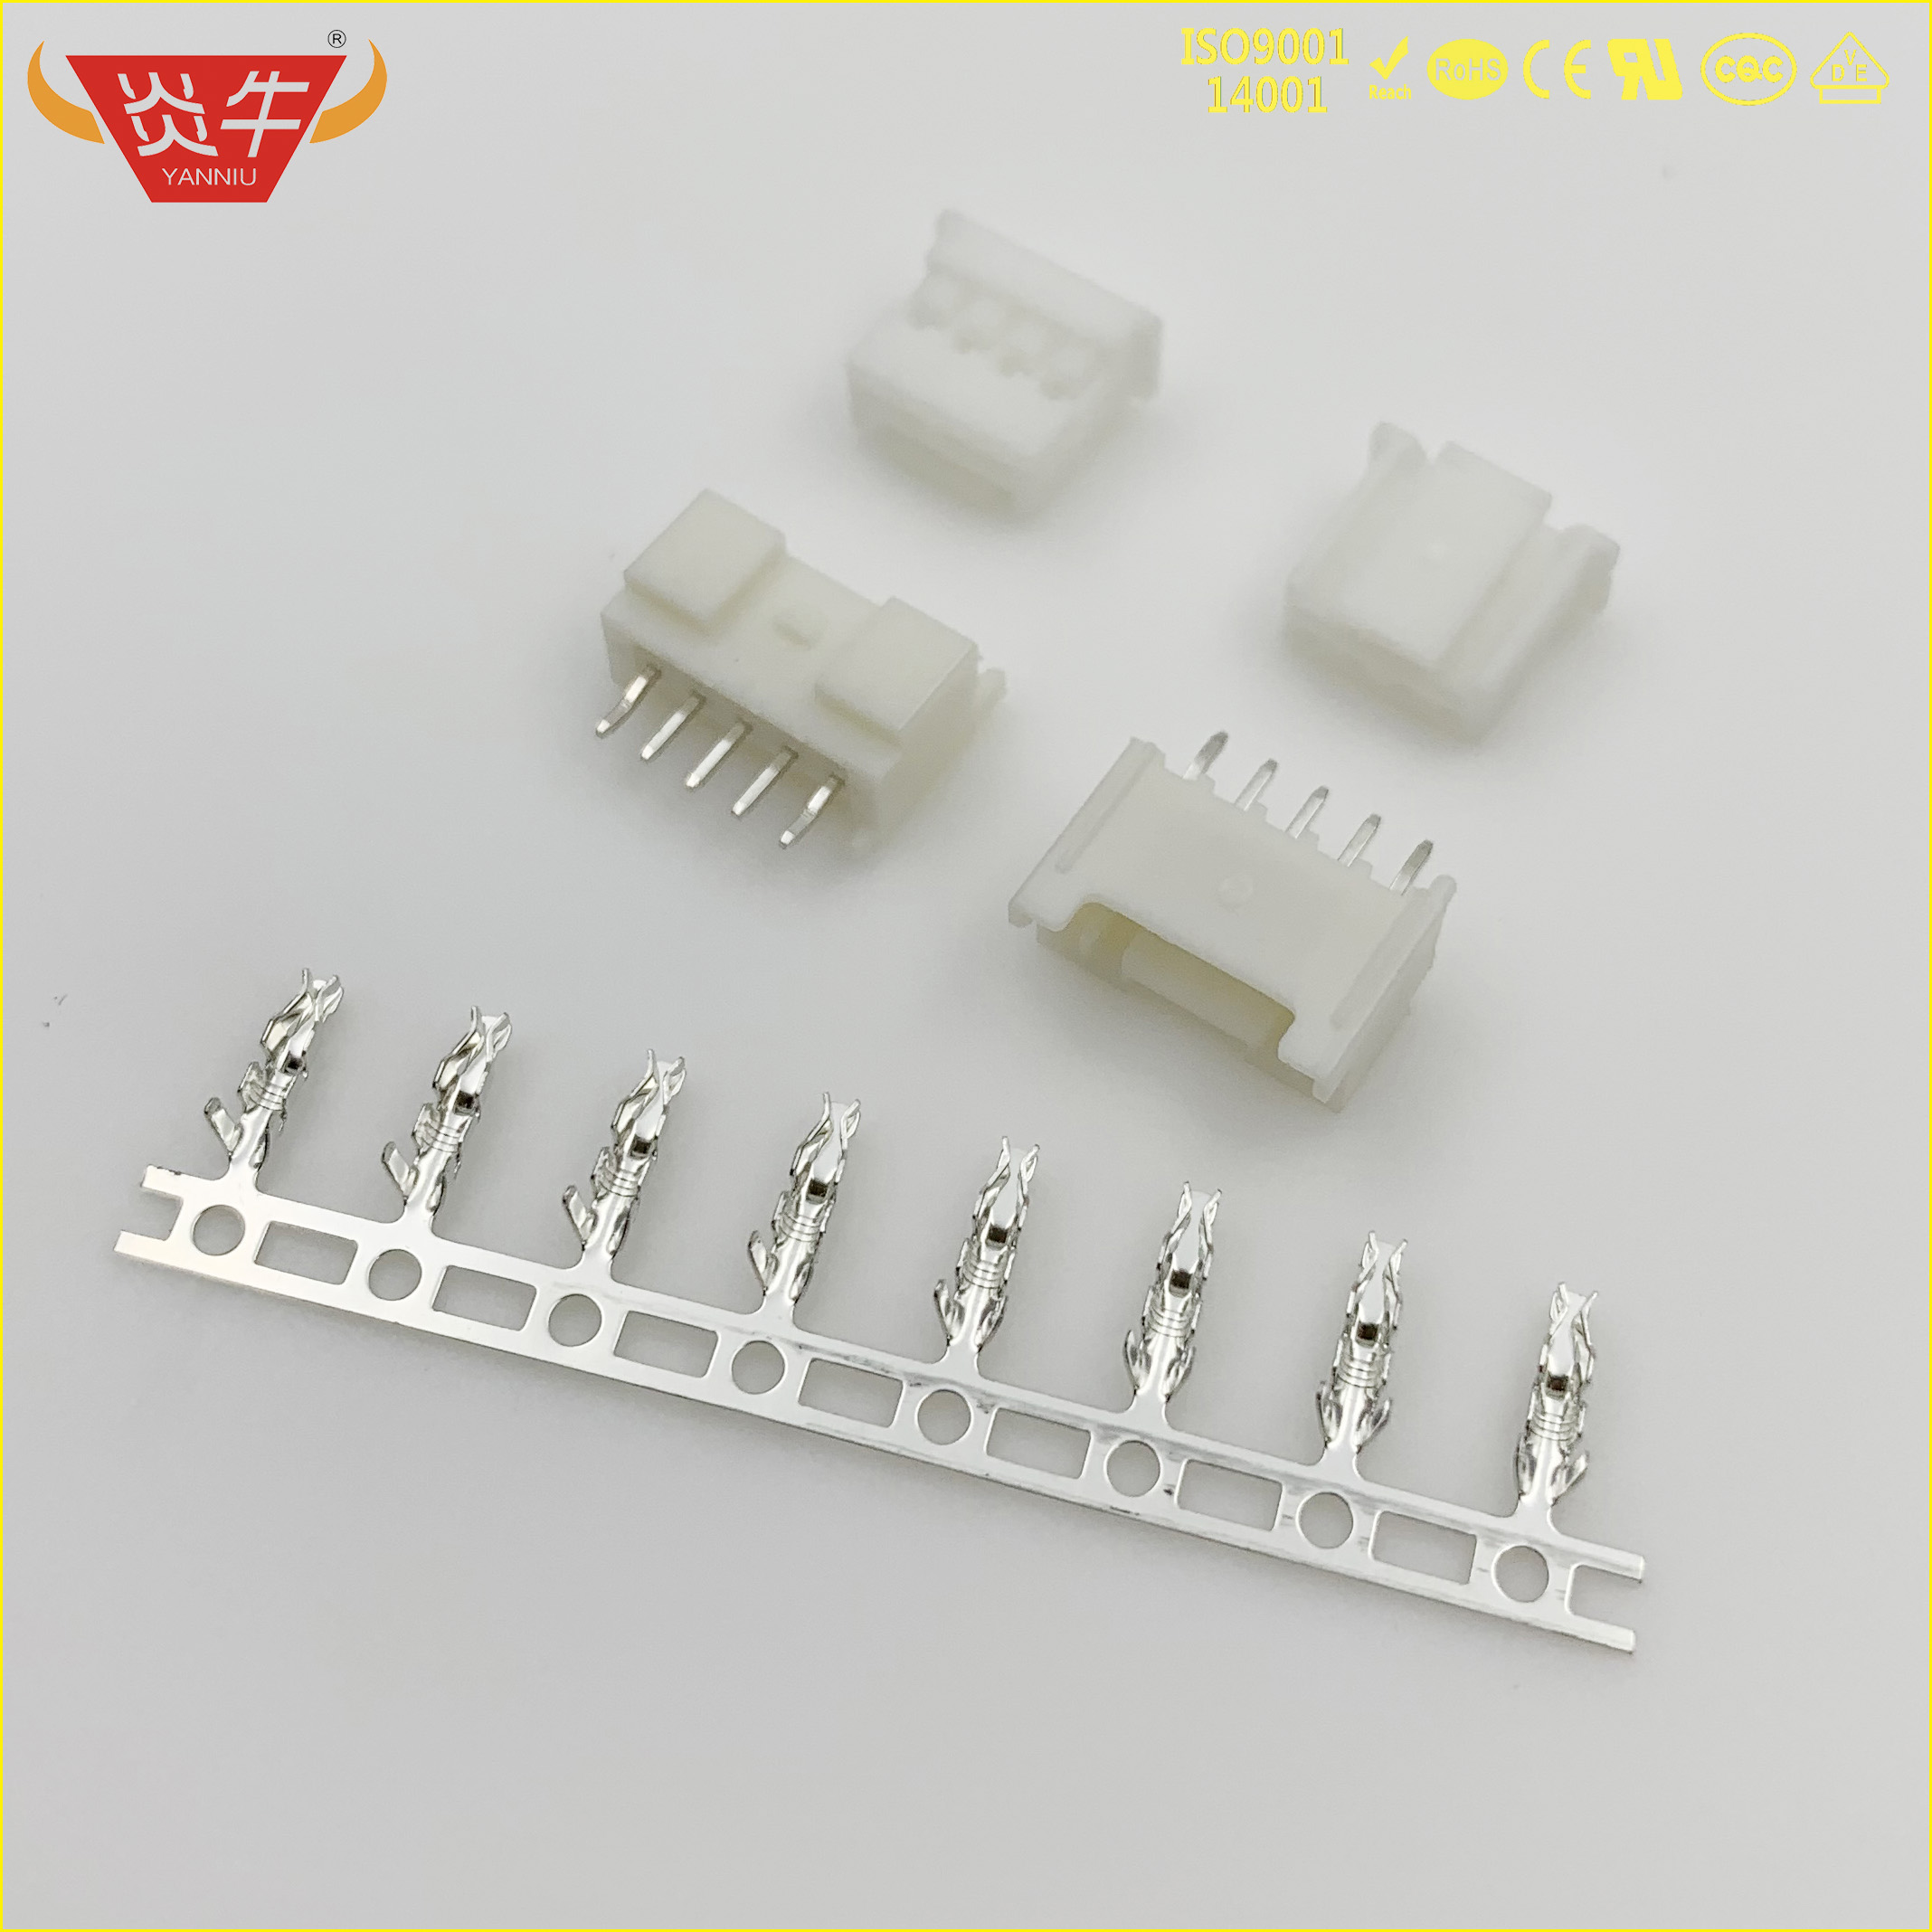 PA 2.0 SMT WHITE STRIP CONNECTOR 2.0mm HOUSING WAFER TERMINAL HX20006-PT HX20018-Y HX20018-A MOLEX JST